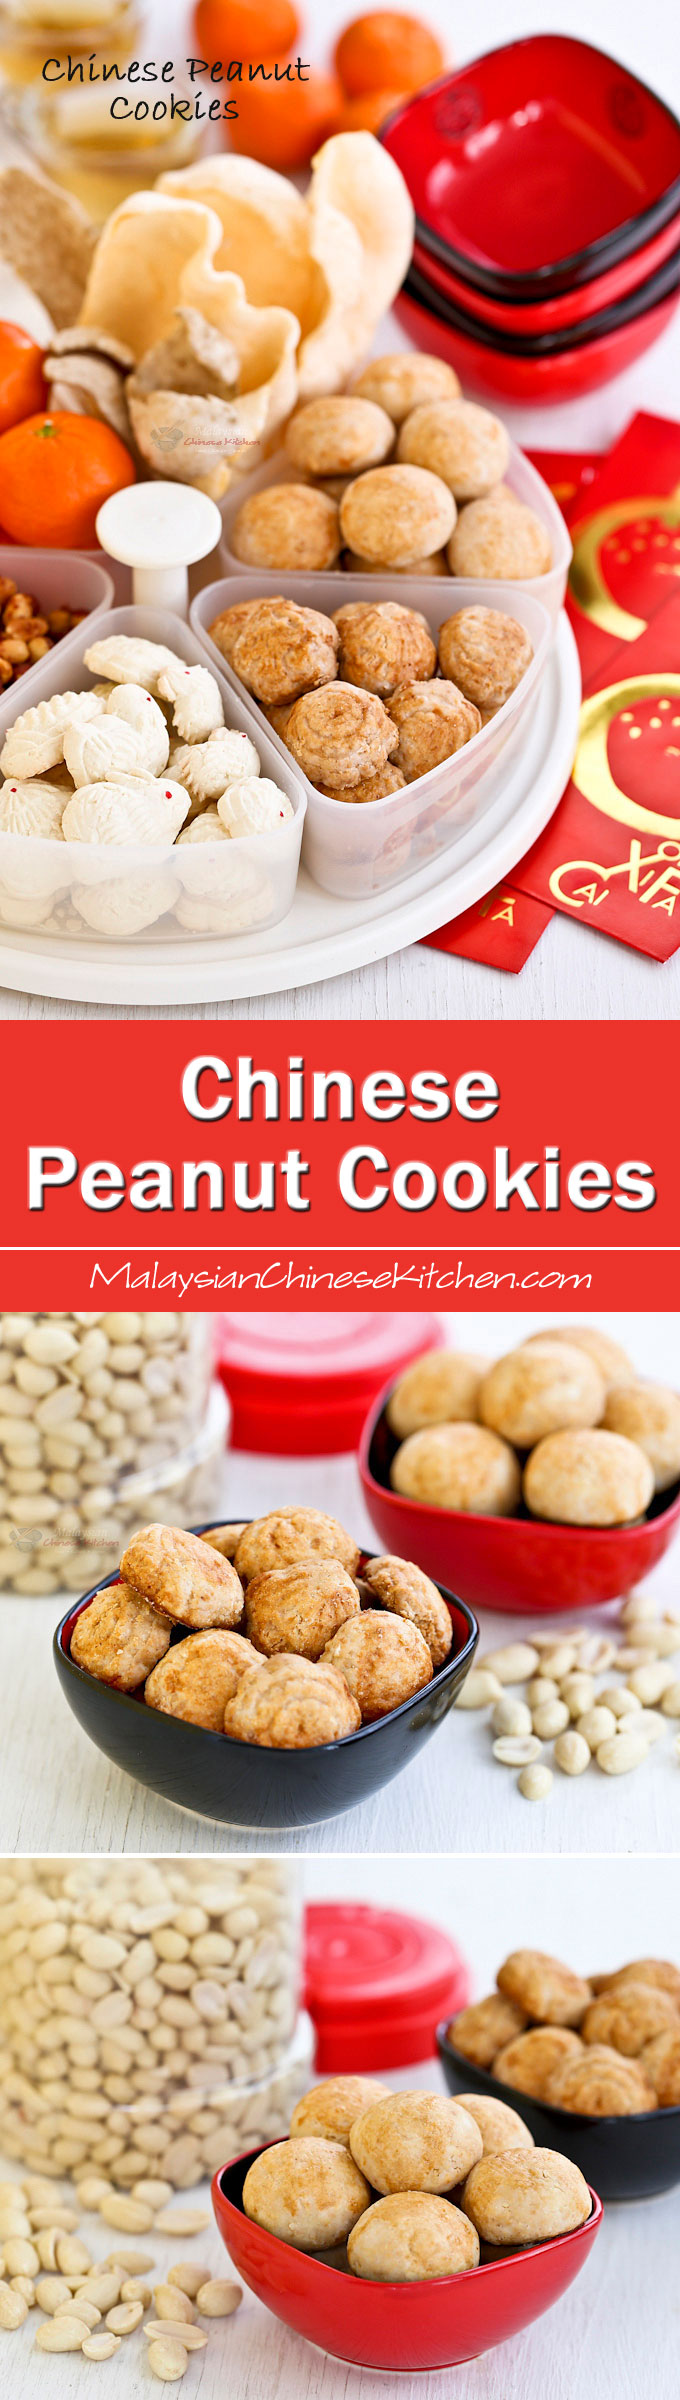 Traditional melt-in-the-mouth Chinese Peanut Cookies made gluten free using rice flour. They are a favorite during the Chinese New Year and popular throughout the year. | MalaysianChineseKitchen.com